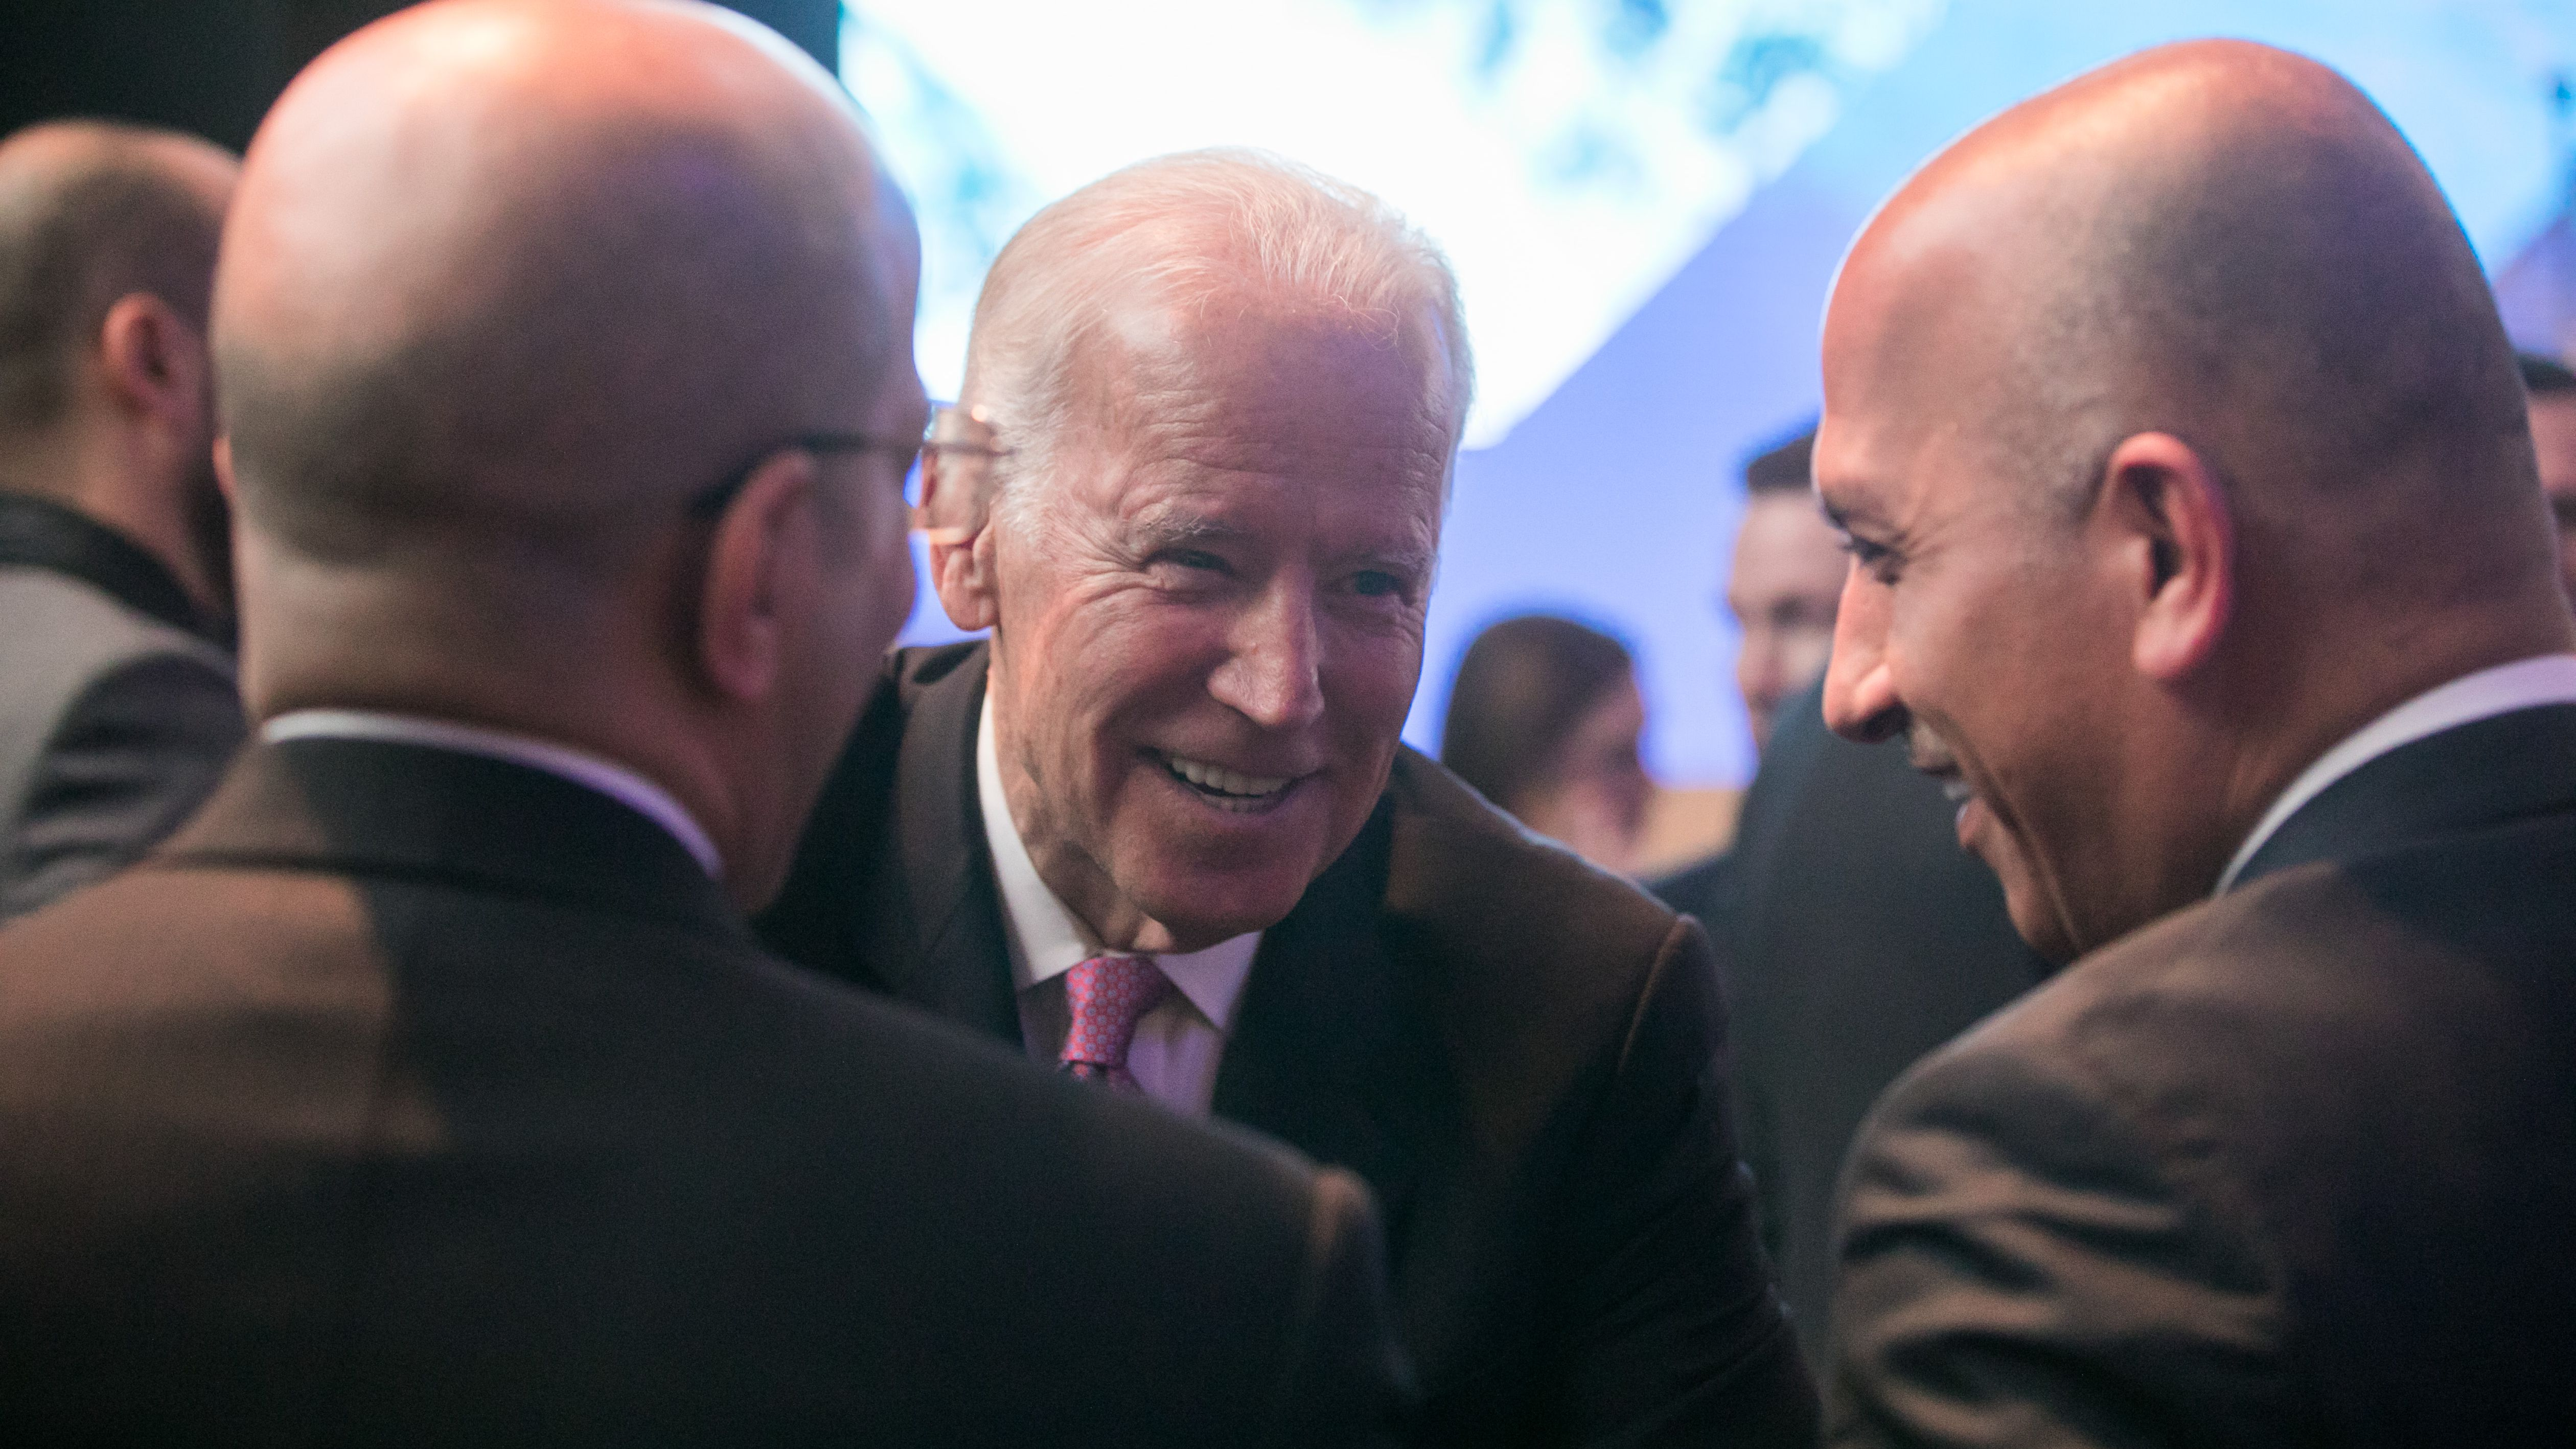 Joe Biden, Vice President of the United States at the Annual Meeting 2017 of the World Economic Forum in Davos, January 17, 2017. Copyright by World Economic Forum / Ciaran McCrickard, 2017.